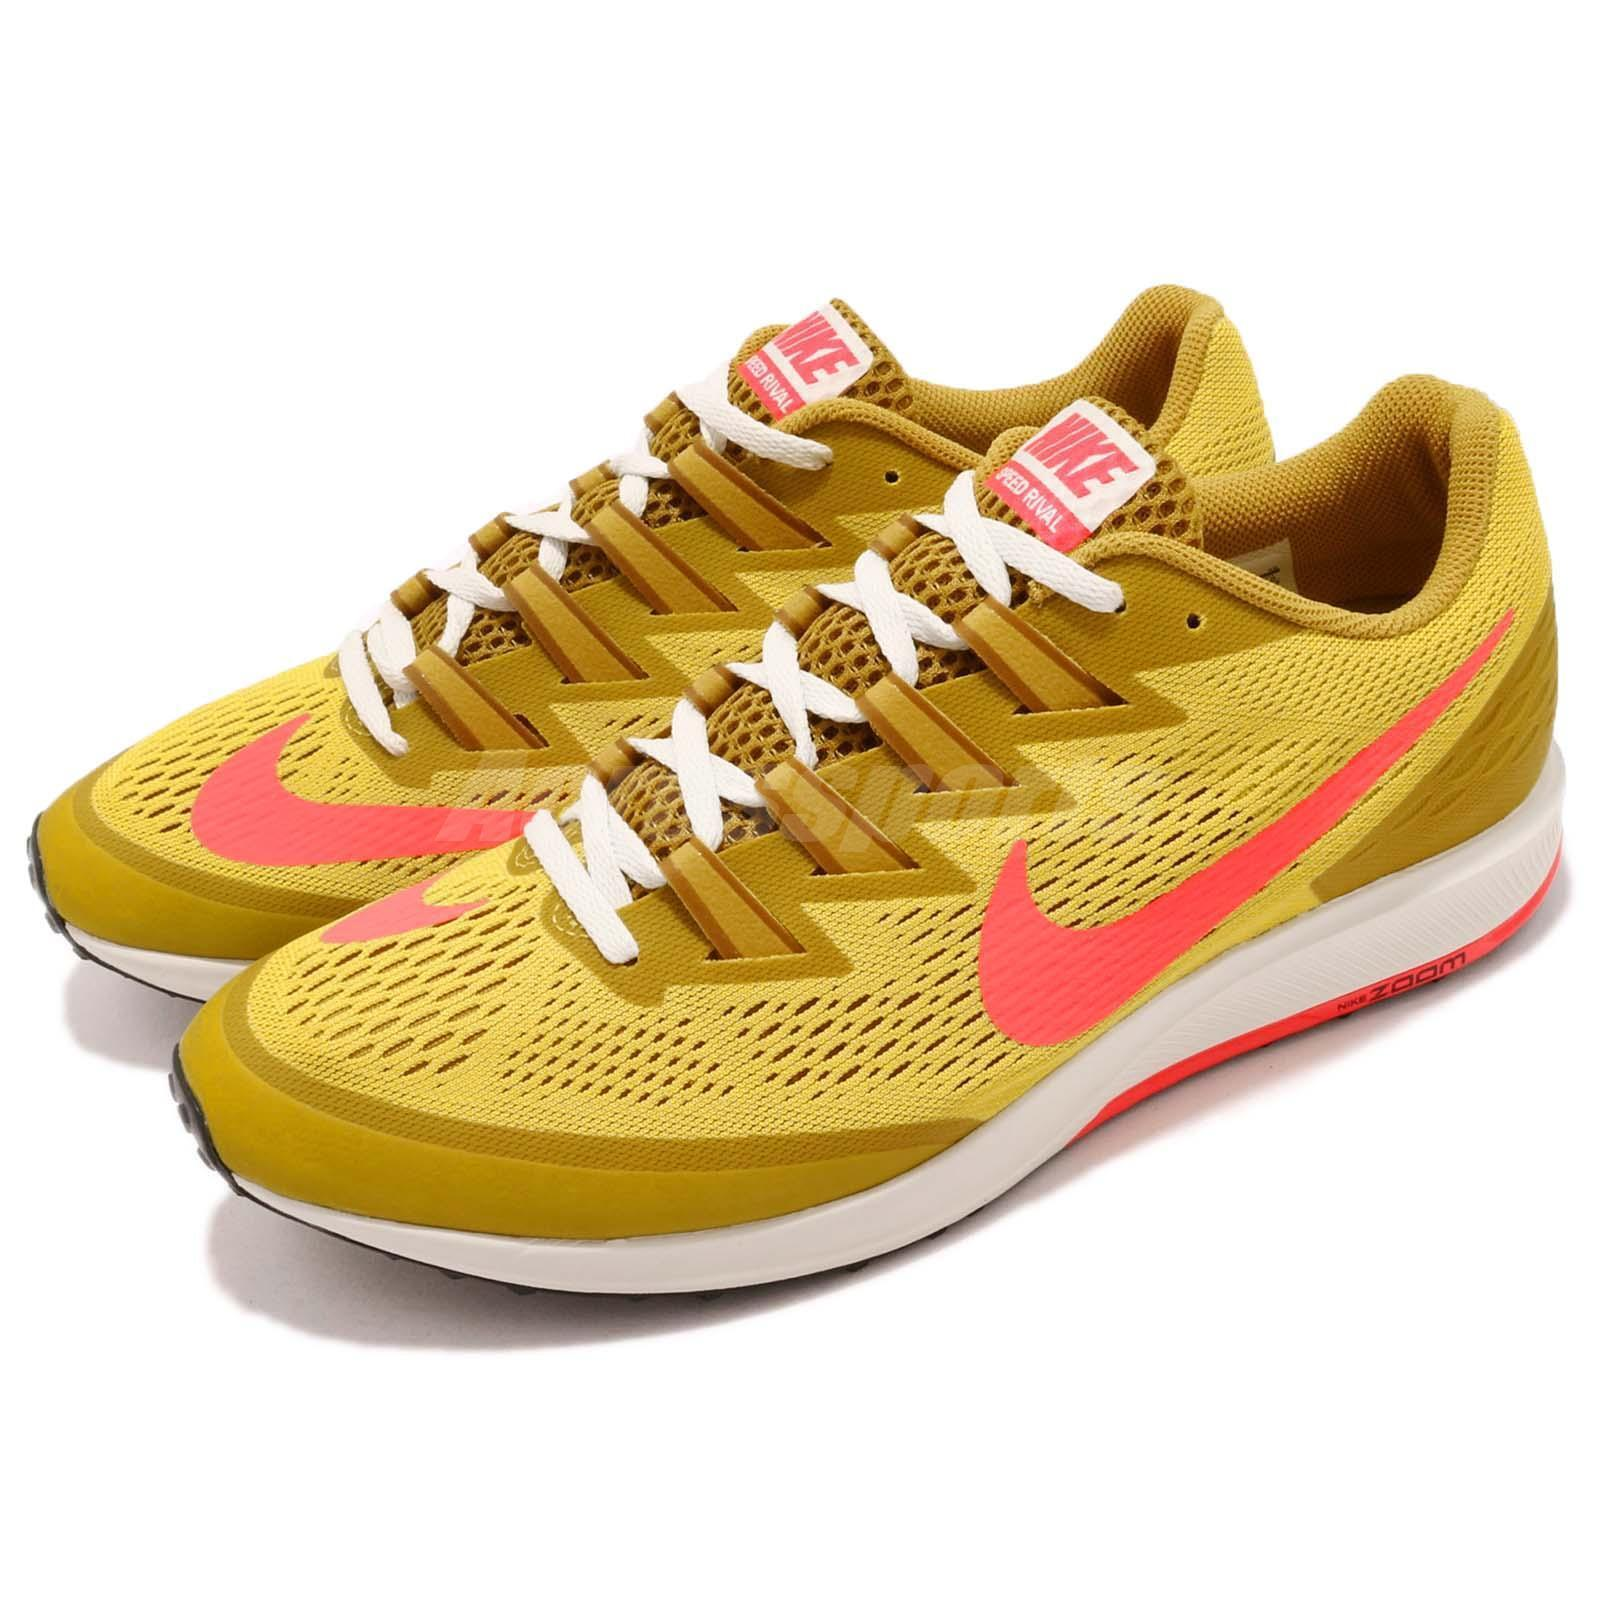 Nike Air  Zoom Speed Rival 6 Yellow Pink Mens Racing Running shoes 880553-706  sale outlet